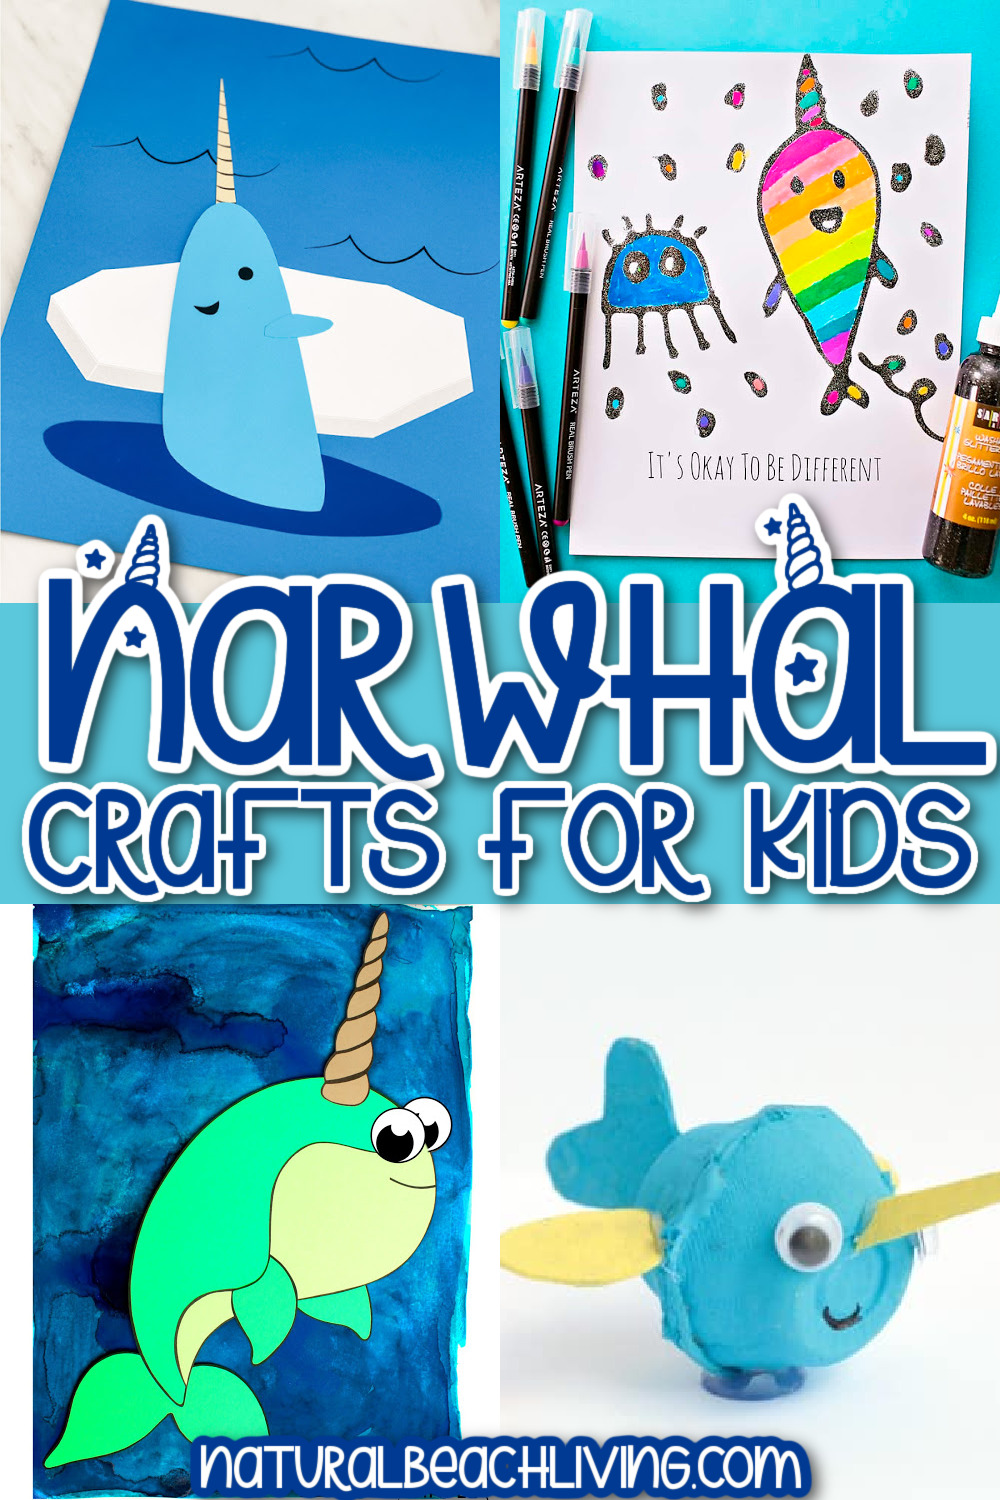 13+ Narwhal Crafts for Kids – Easy and Super Cute